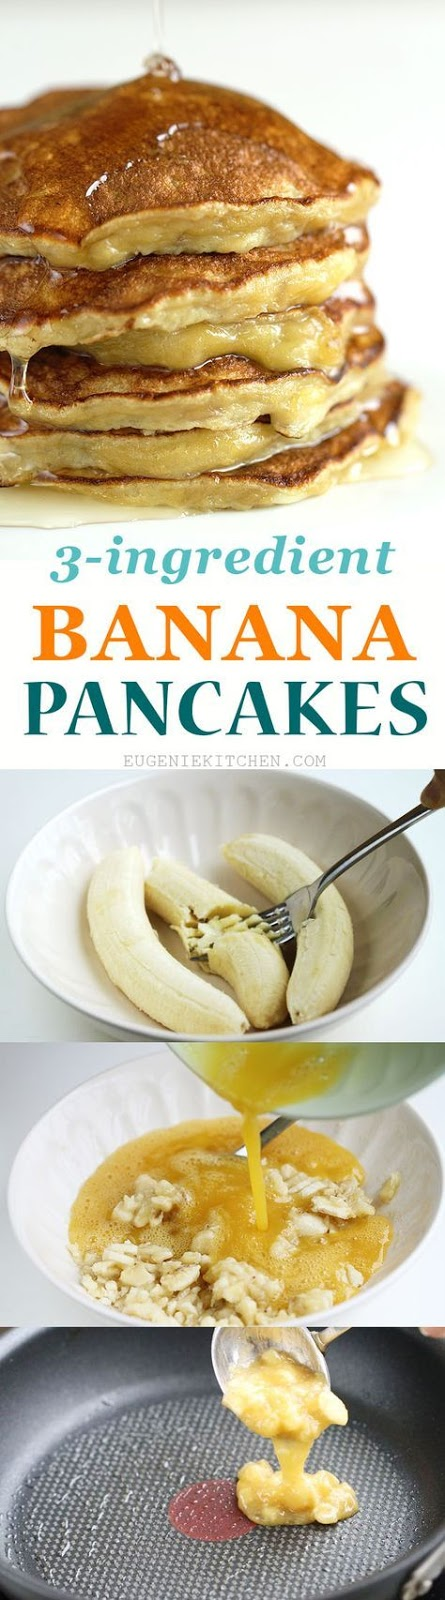 3-Ingredient Banana Pancakes Glueten-Free, Flourless, Low-Calorie #banana #bananapancakes #pancakes #pancakesrecipes #easyrecipes #easycook